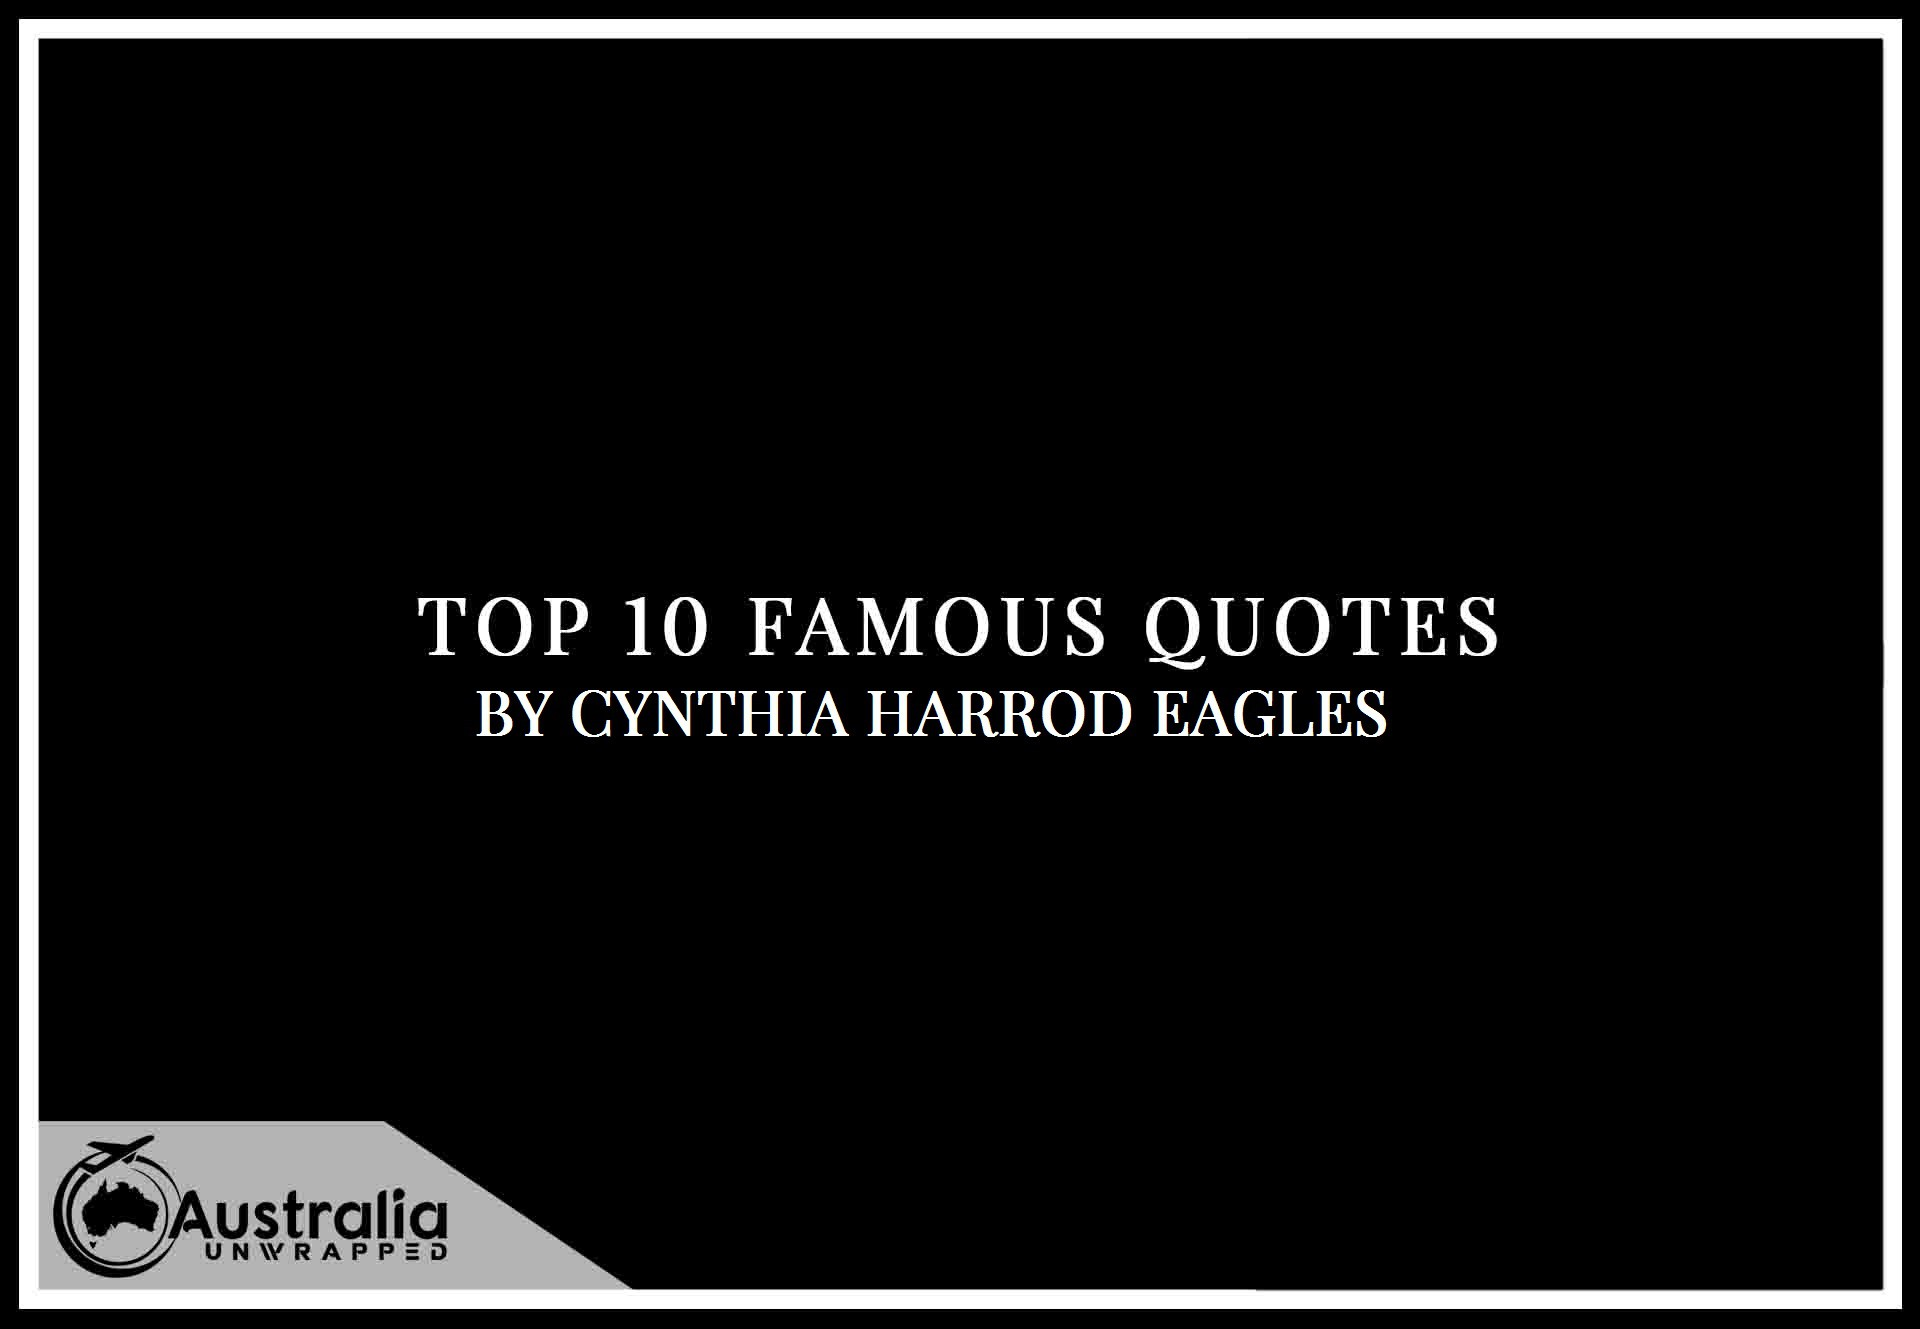 Cynthia Harrod-Eagles's Top 10 Popular and Famous Quotes